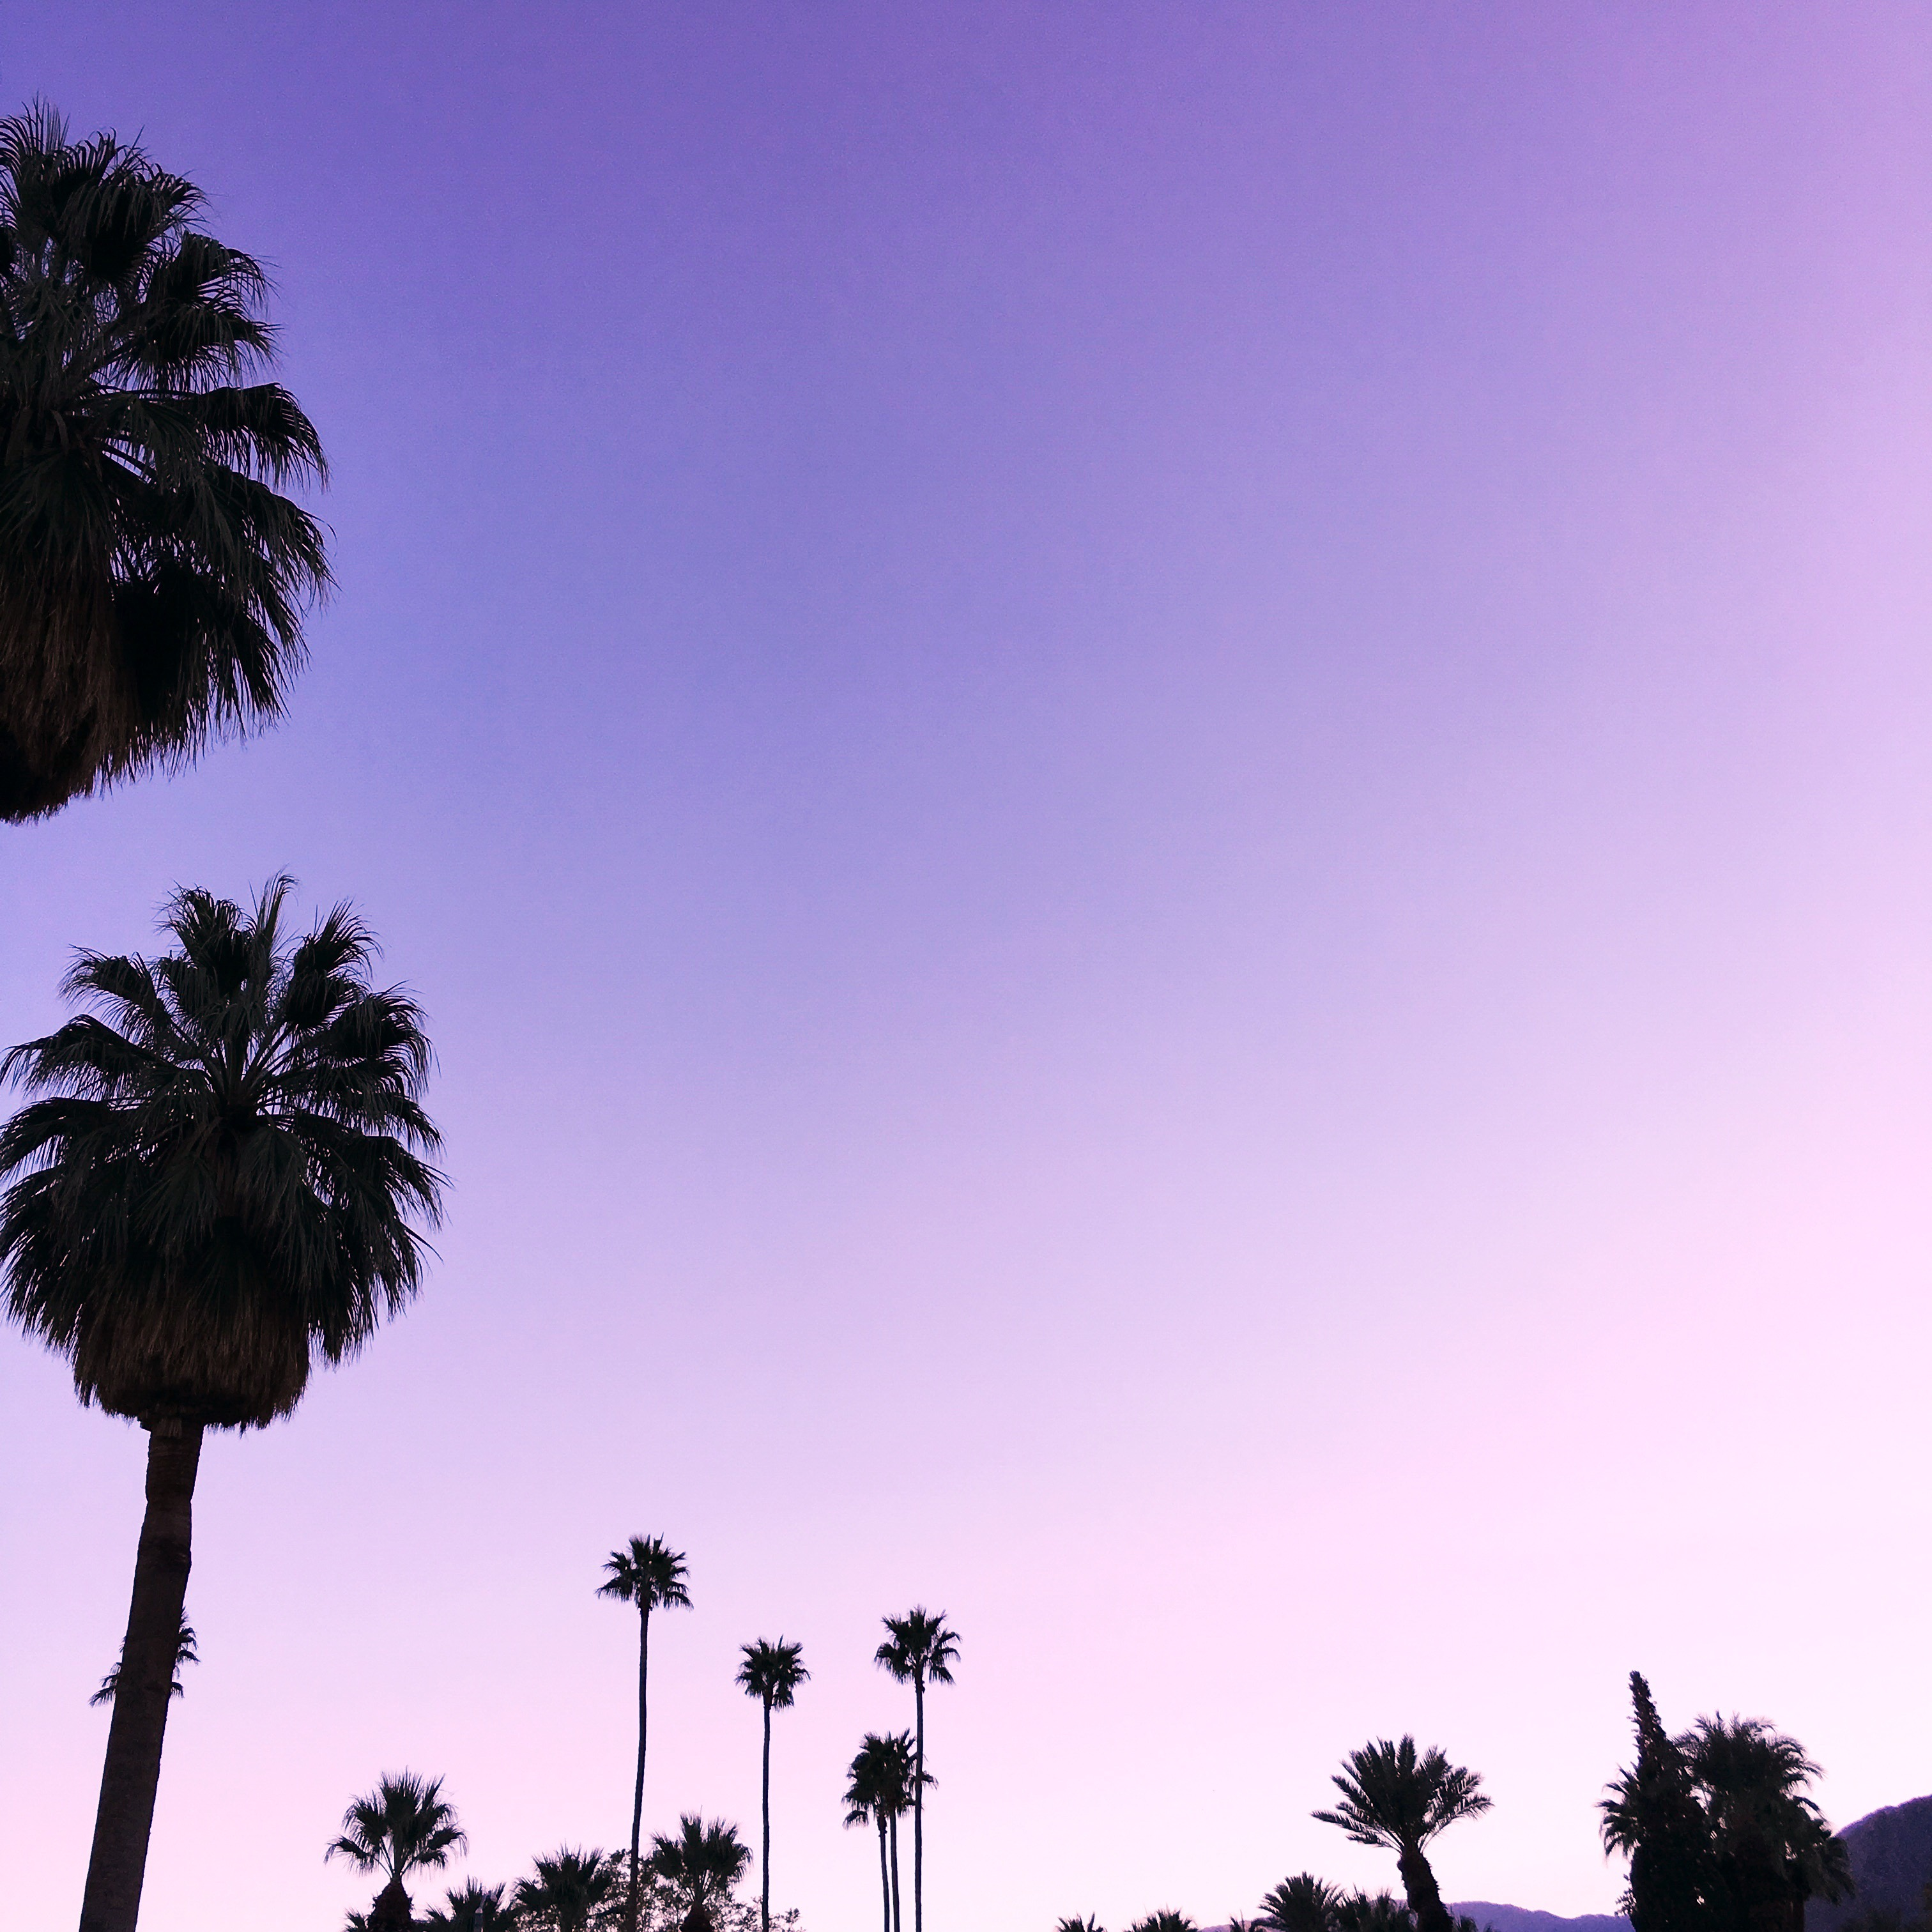 I'm moving! To Palm Springs! – Melodrama